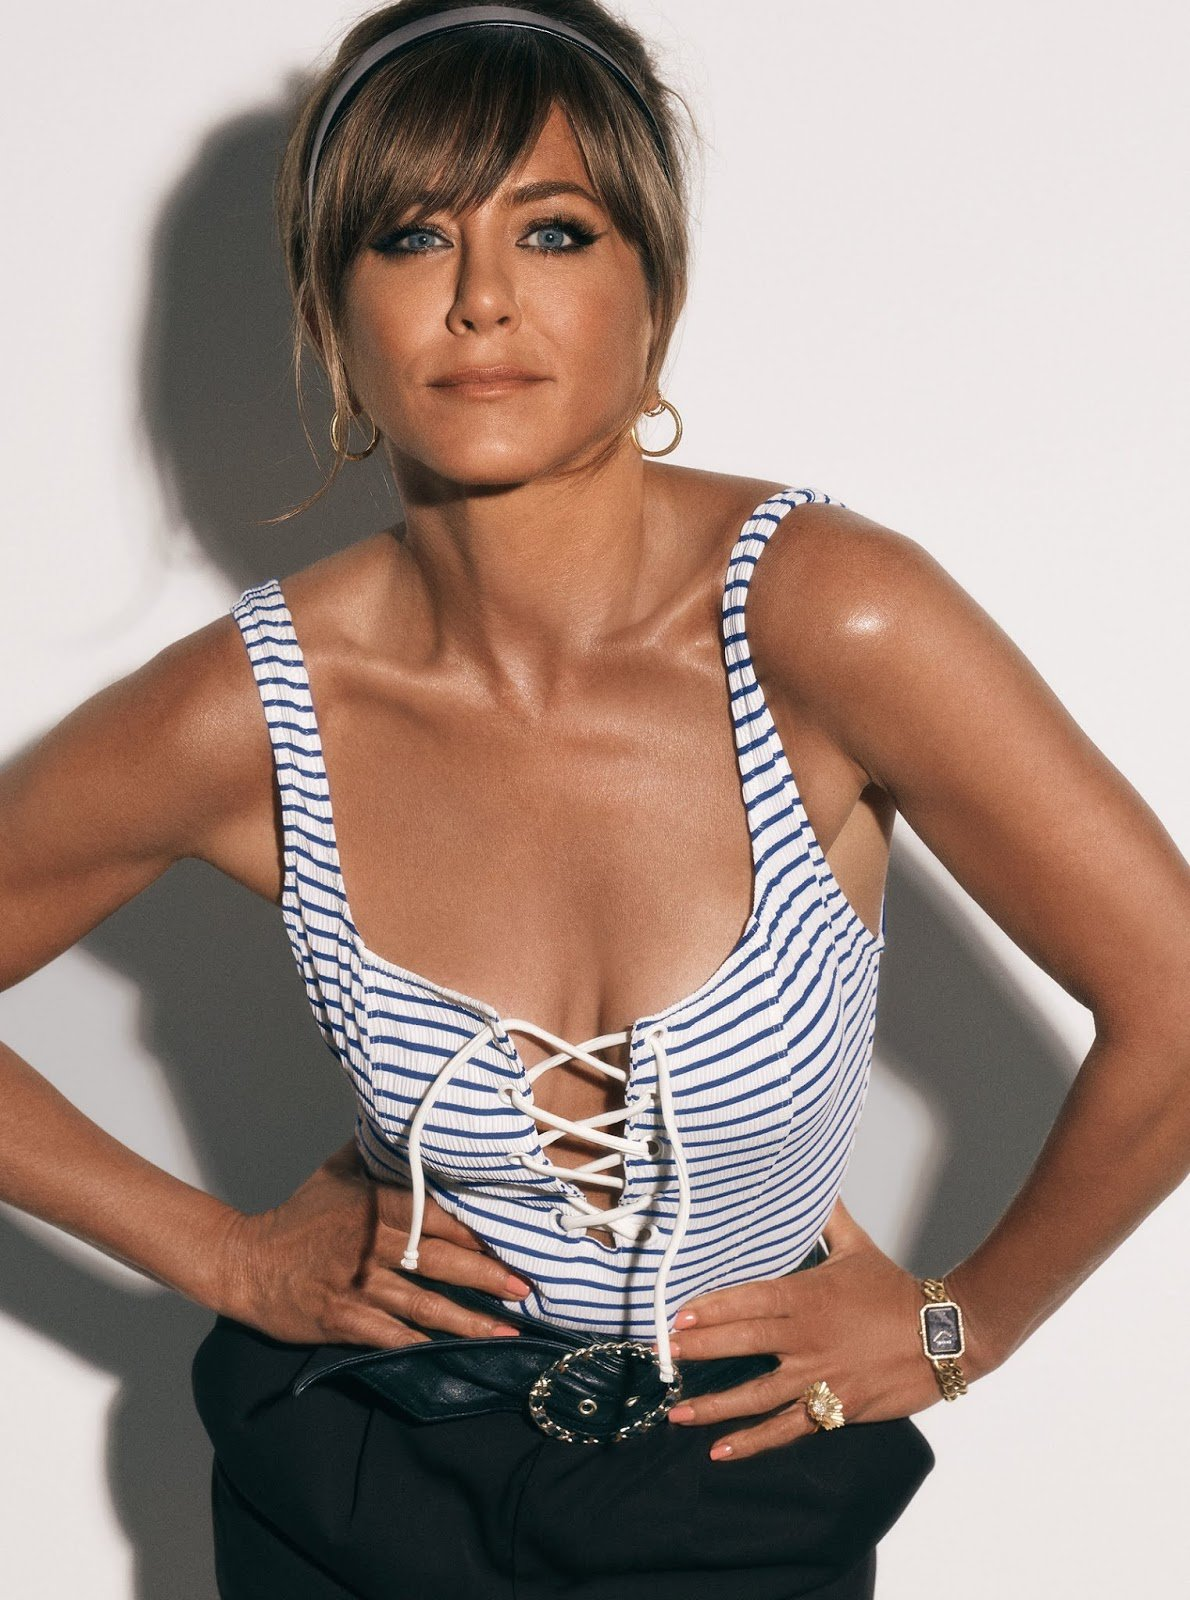 Jennifer Aniston for InStyle USA by Michael Thompson.